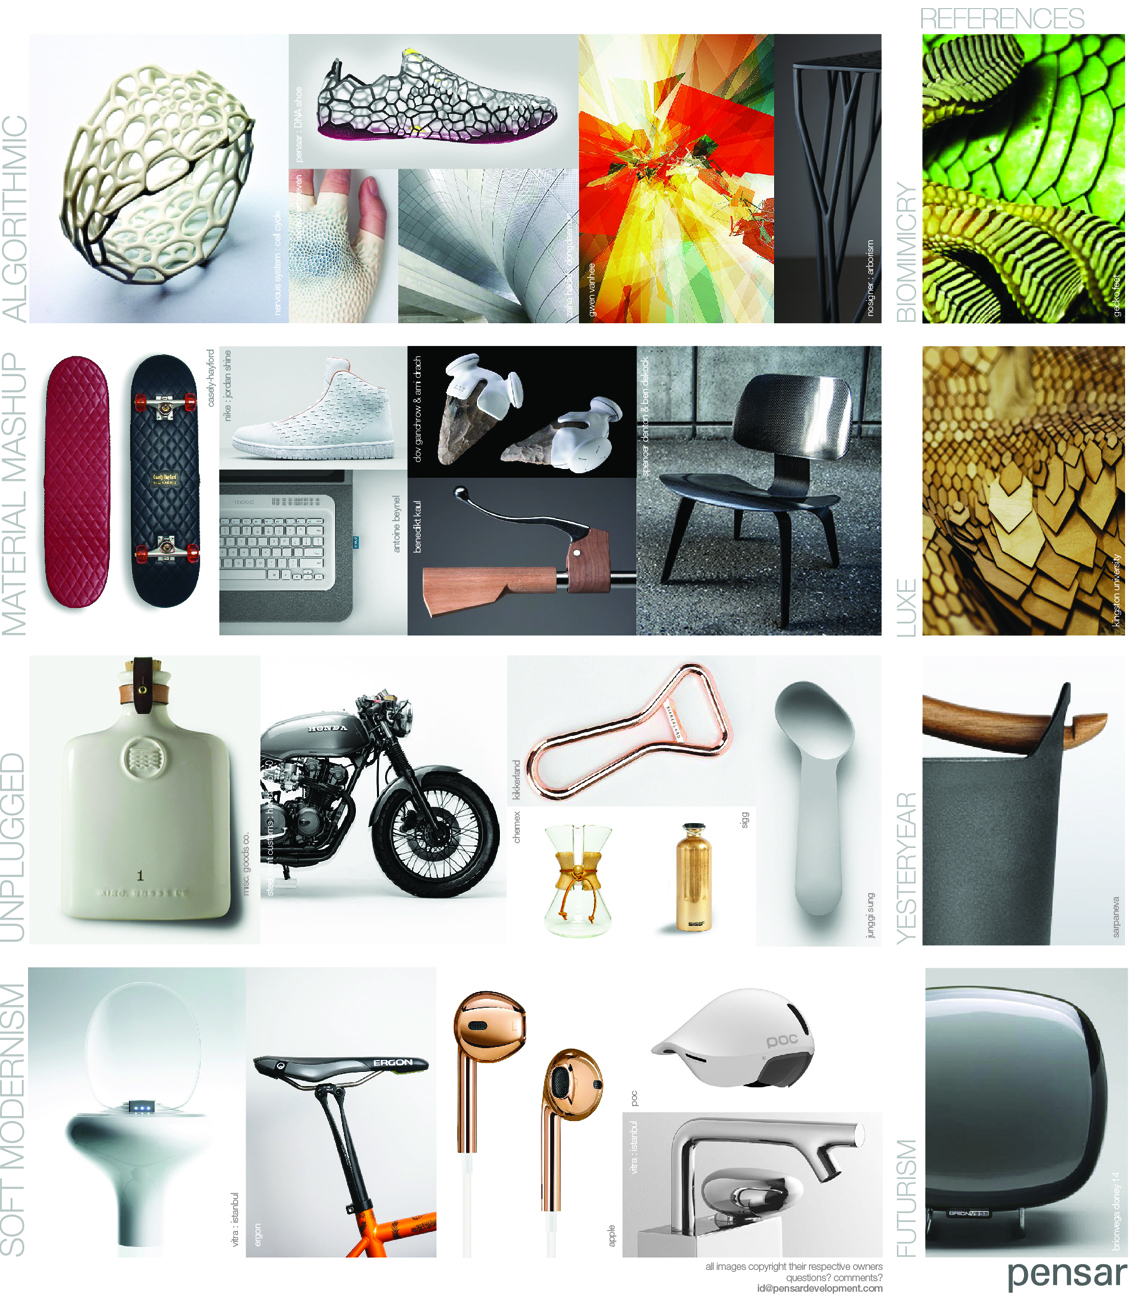 2015 Industrial Design Trends Pensar Development